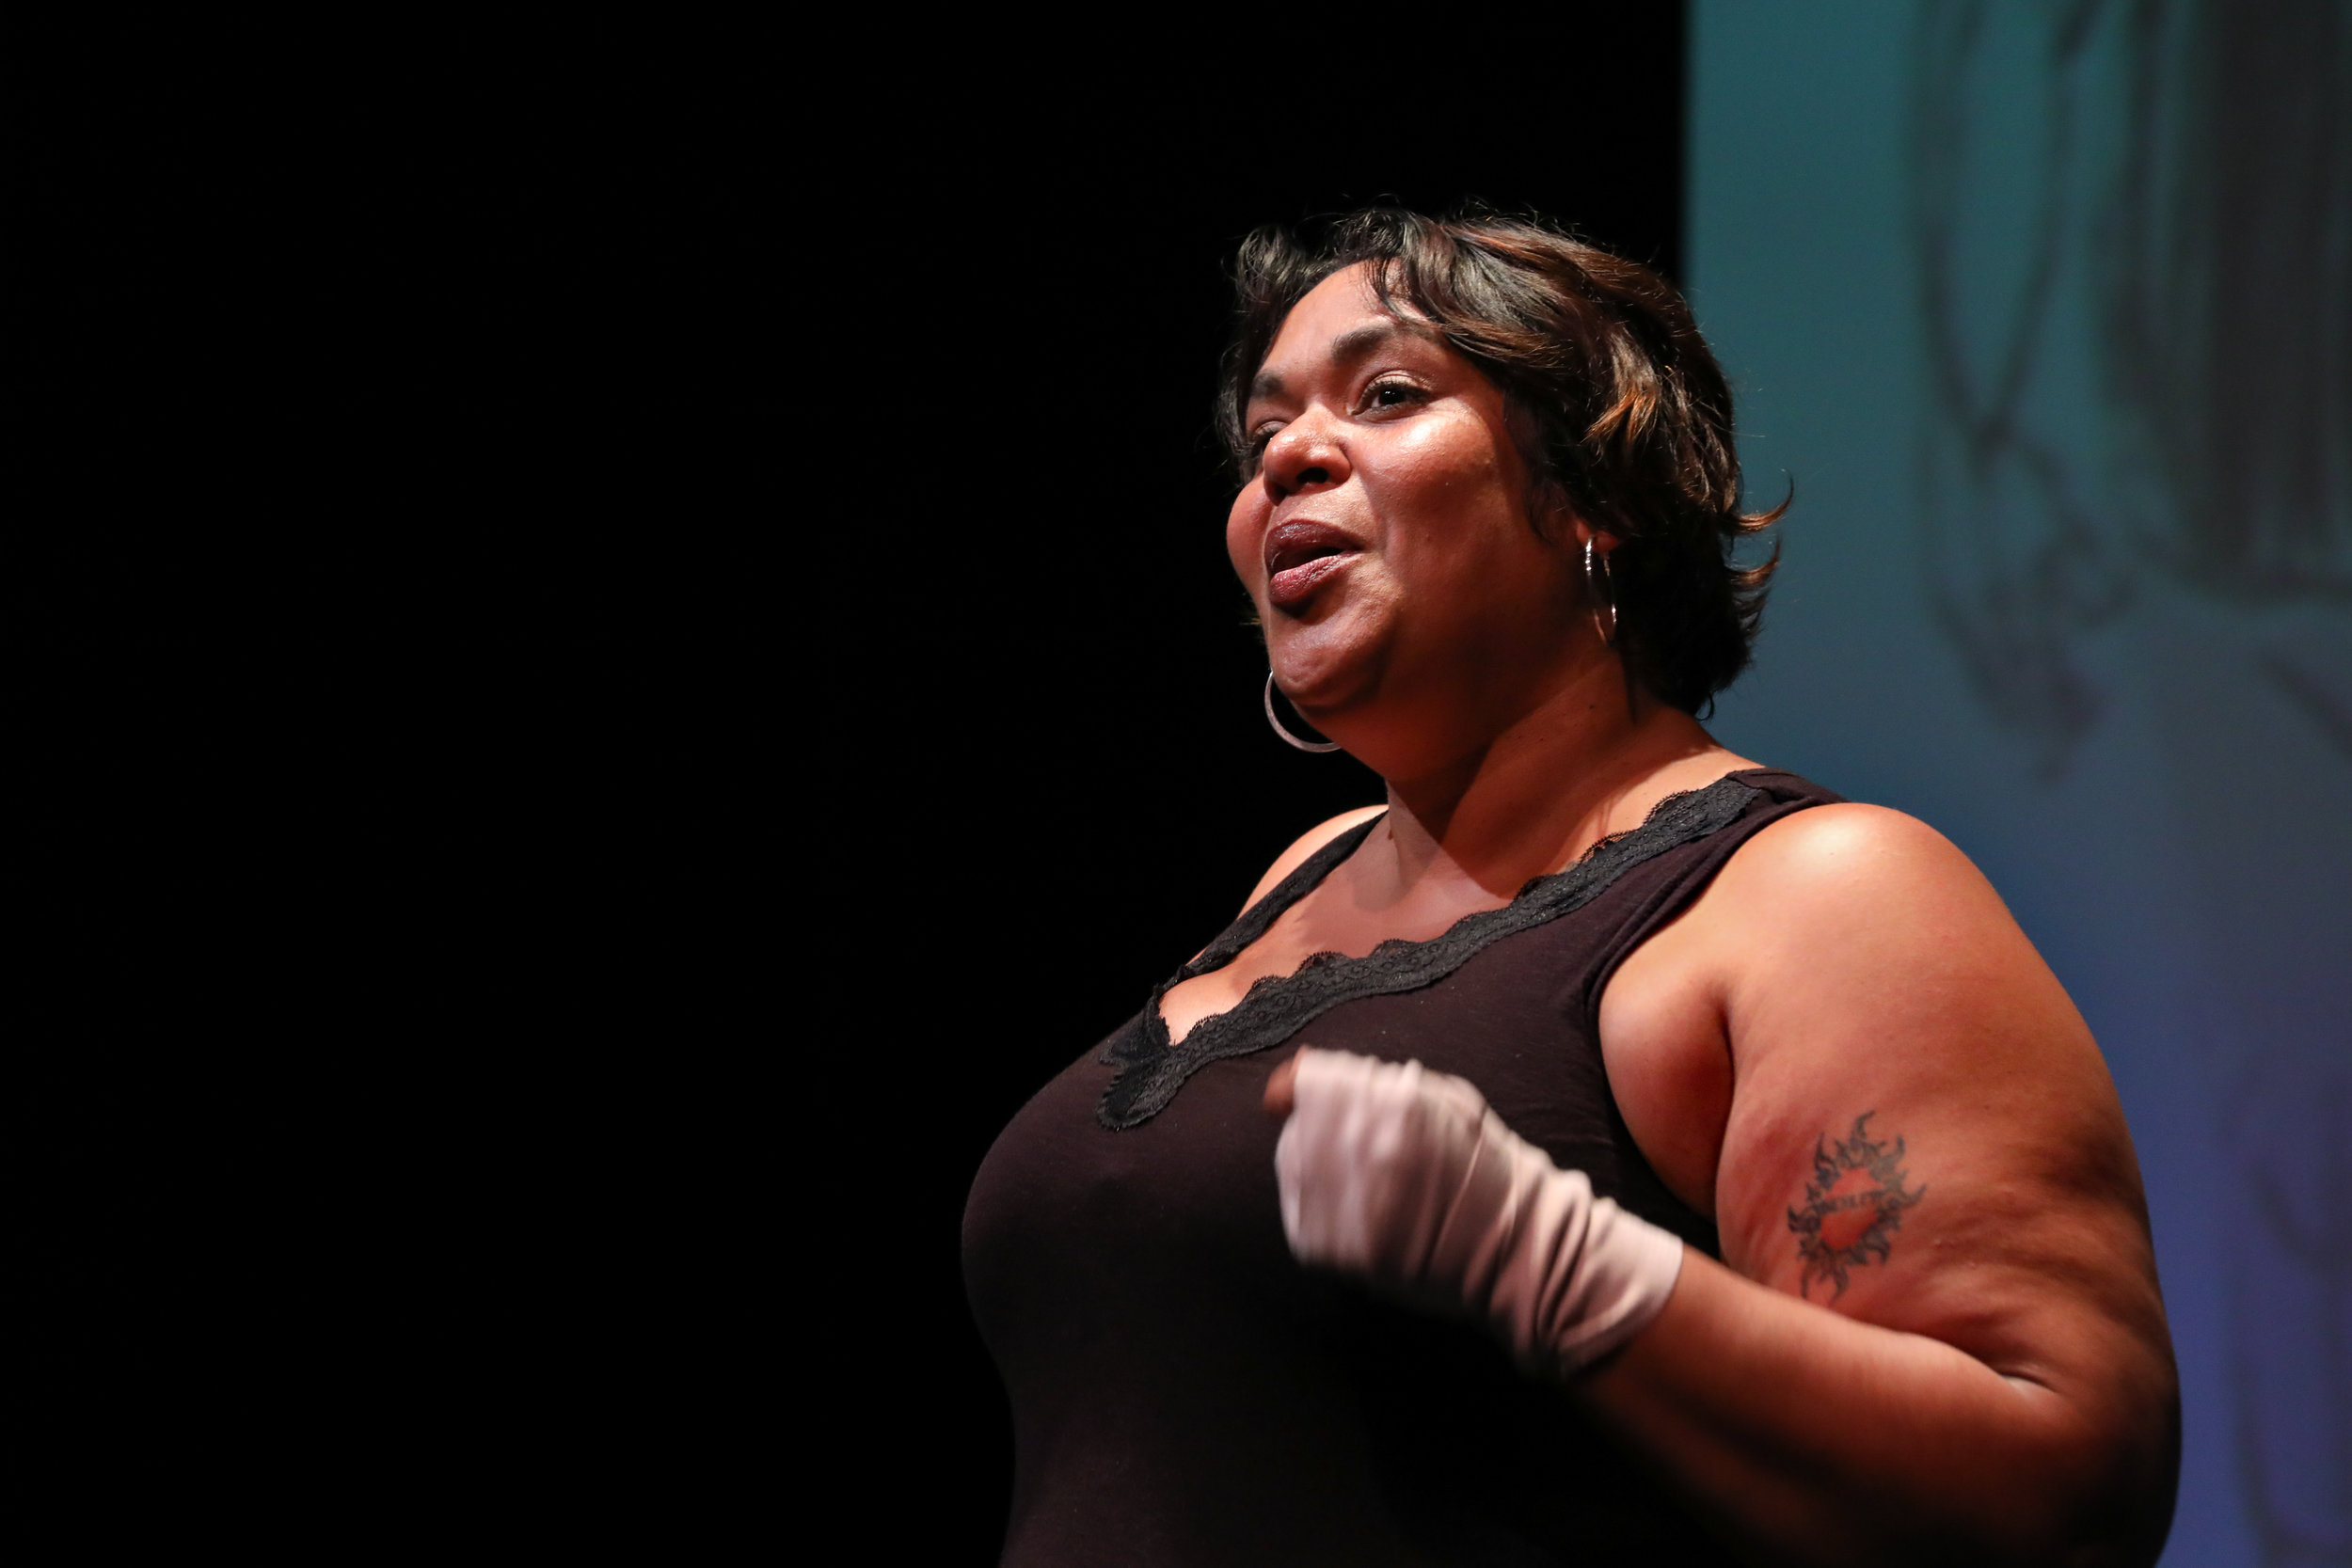 Photo by HuthPhoto. Production by PlayMakers Repertory Company. Pictured: Florinda Bryant. Illustrations by Zeke Pena.